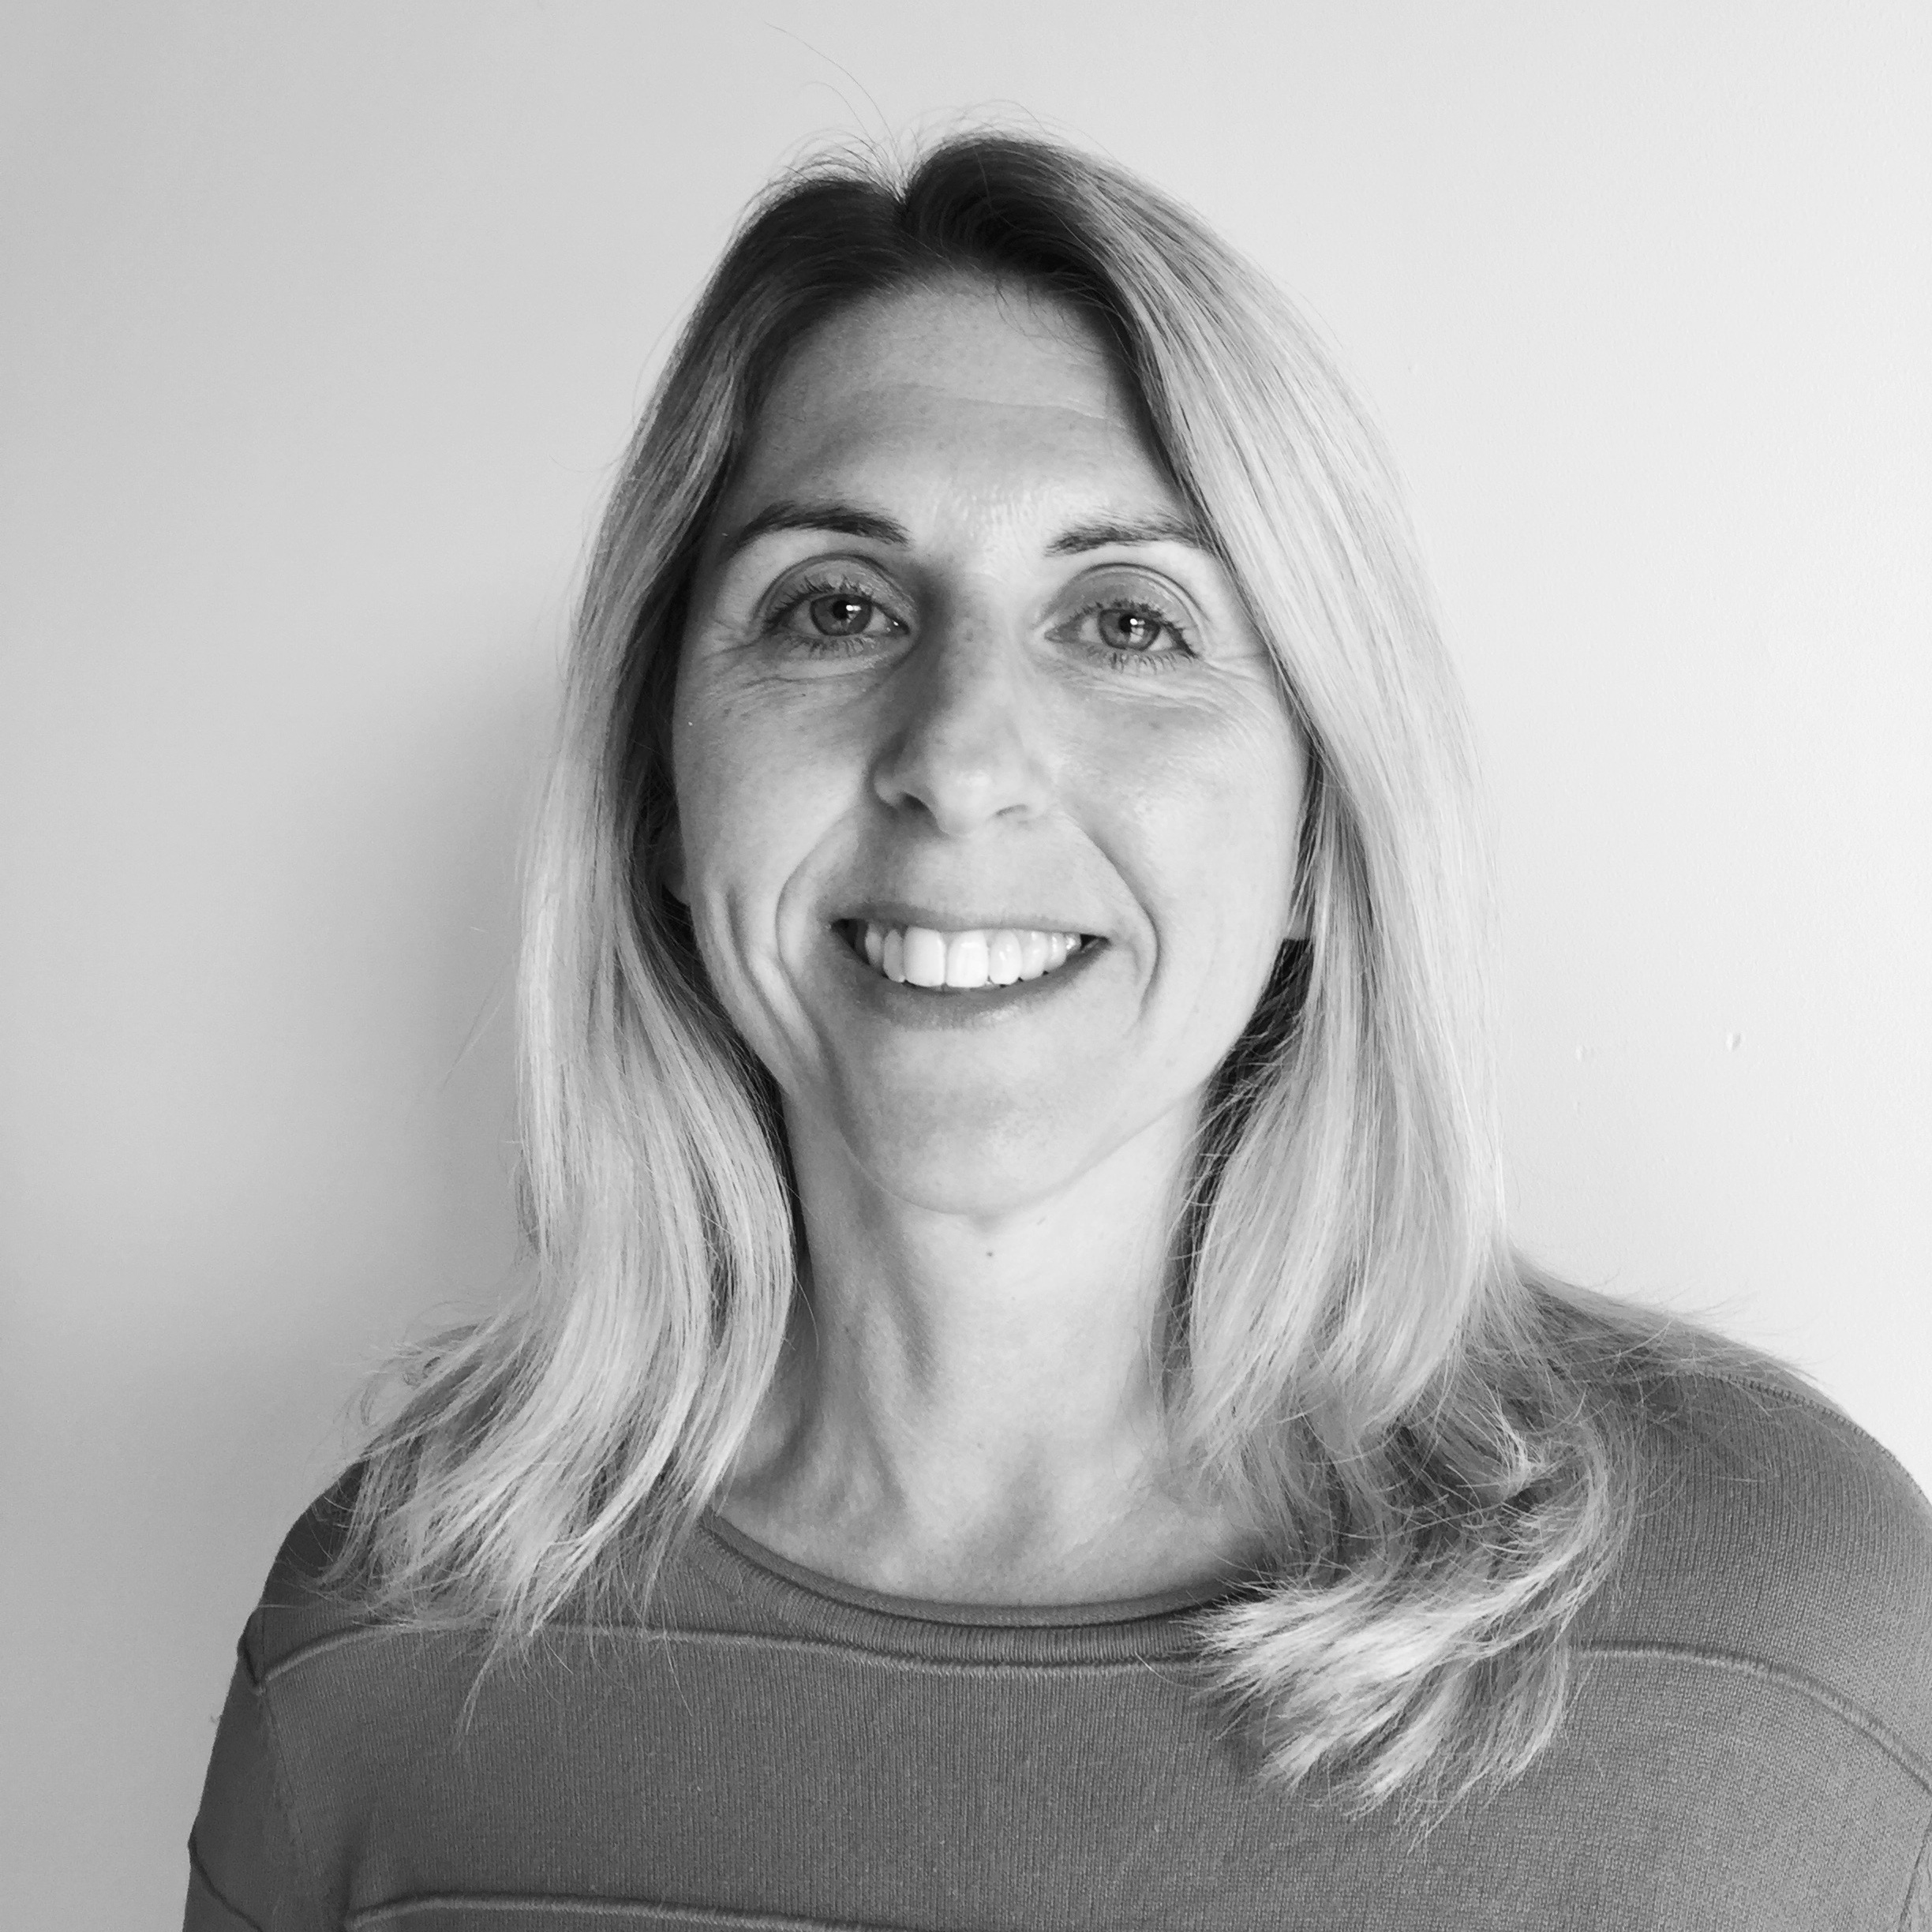 Suzanne Coombe - Finance ManagerSuzanne joined Orme in 2018 bringing her wealth of financial and commercial experience. Having worked for global companies, charities and SME's, she enjoys all aspects of financial management and planning. Since relocating to Somerset, she spends her free time with her family and going on long dog walks to explore the countryside and coastline.